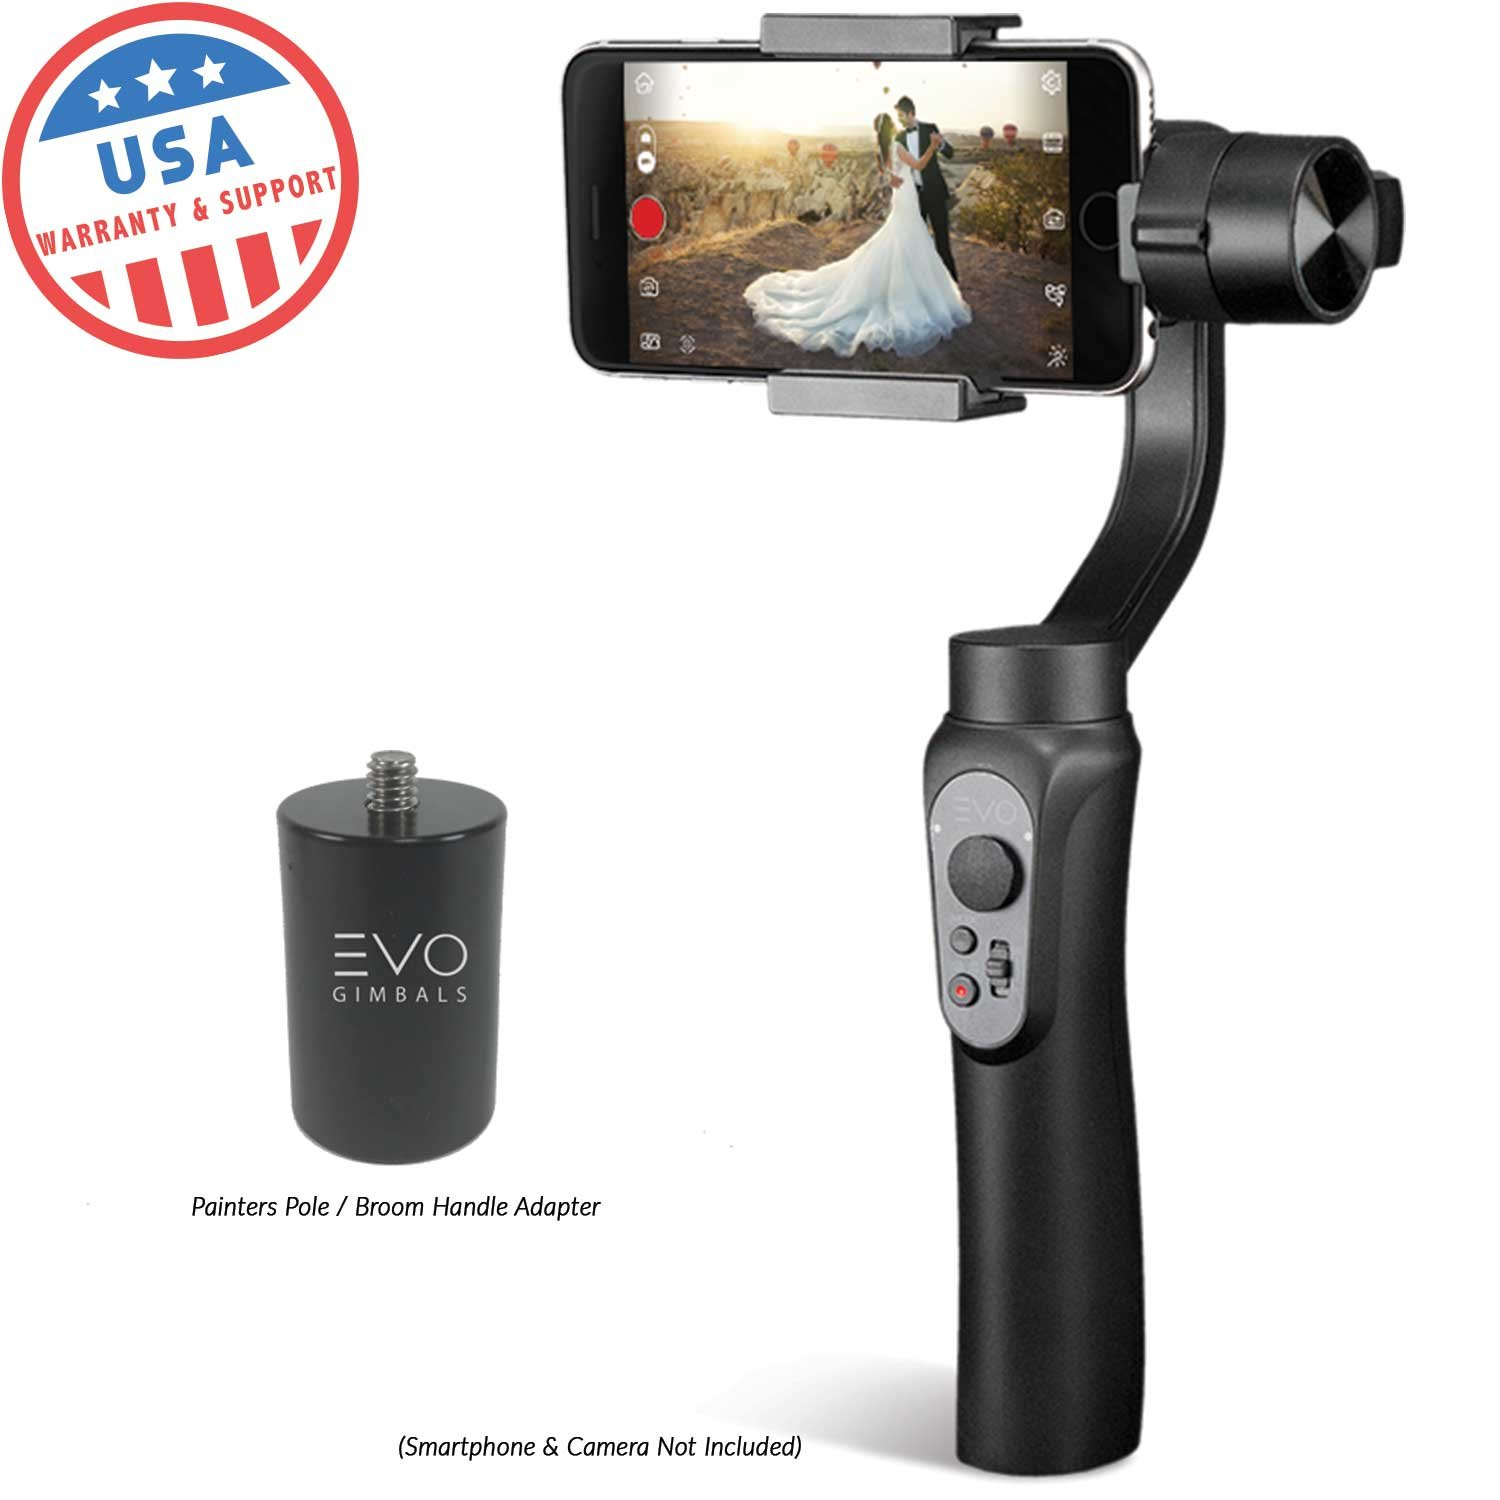 EVO Shift Camera Stabilizer - Handheld Gimbal for iPhone & Android Smartphones | Black | 1 Year US Warranty | Bundle Includes: EVO Shift + PA100 Pole Adapter